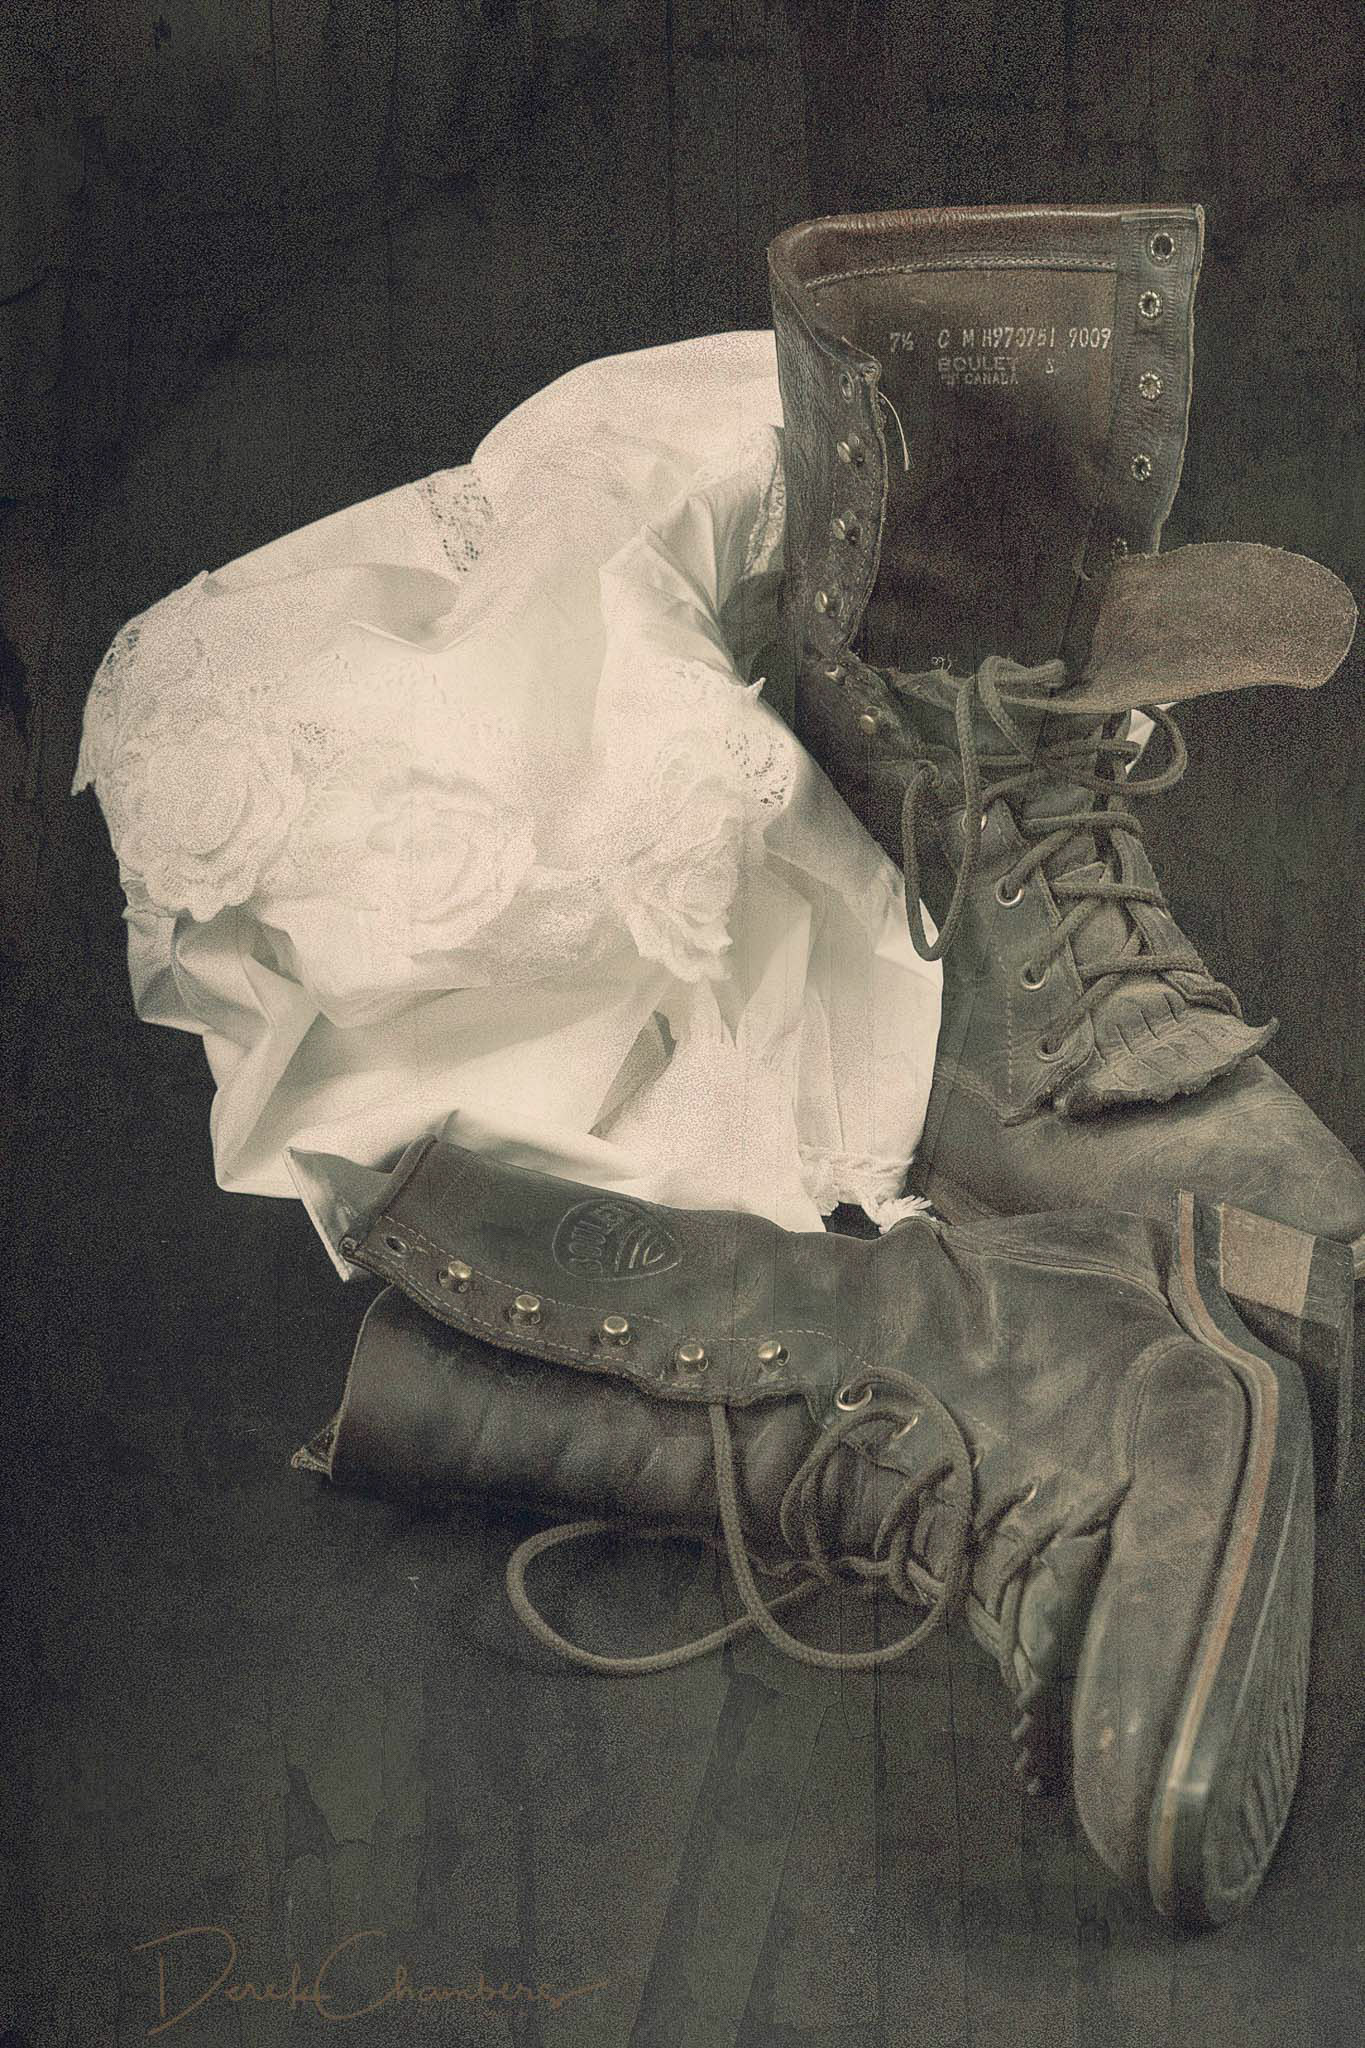 Boots and a Blouse - Derek Chambers